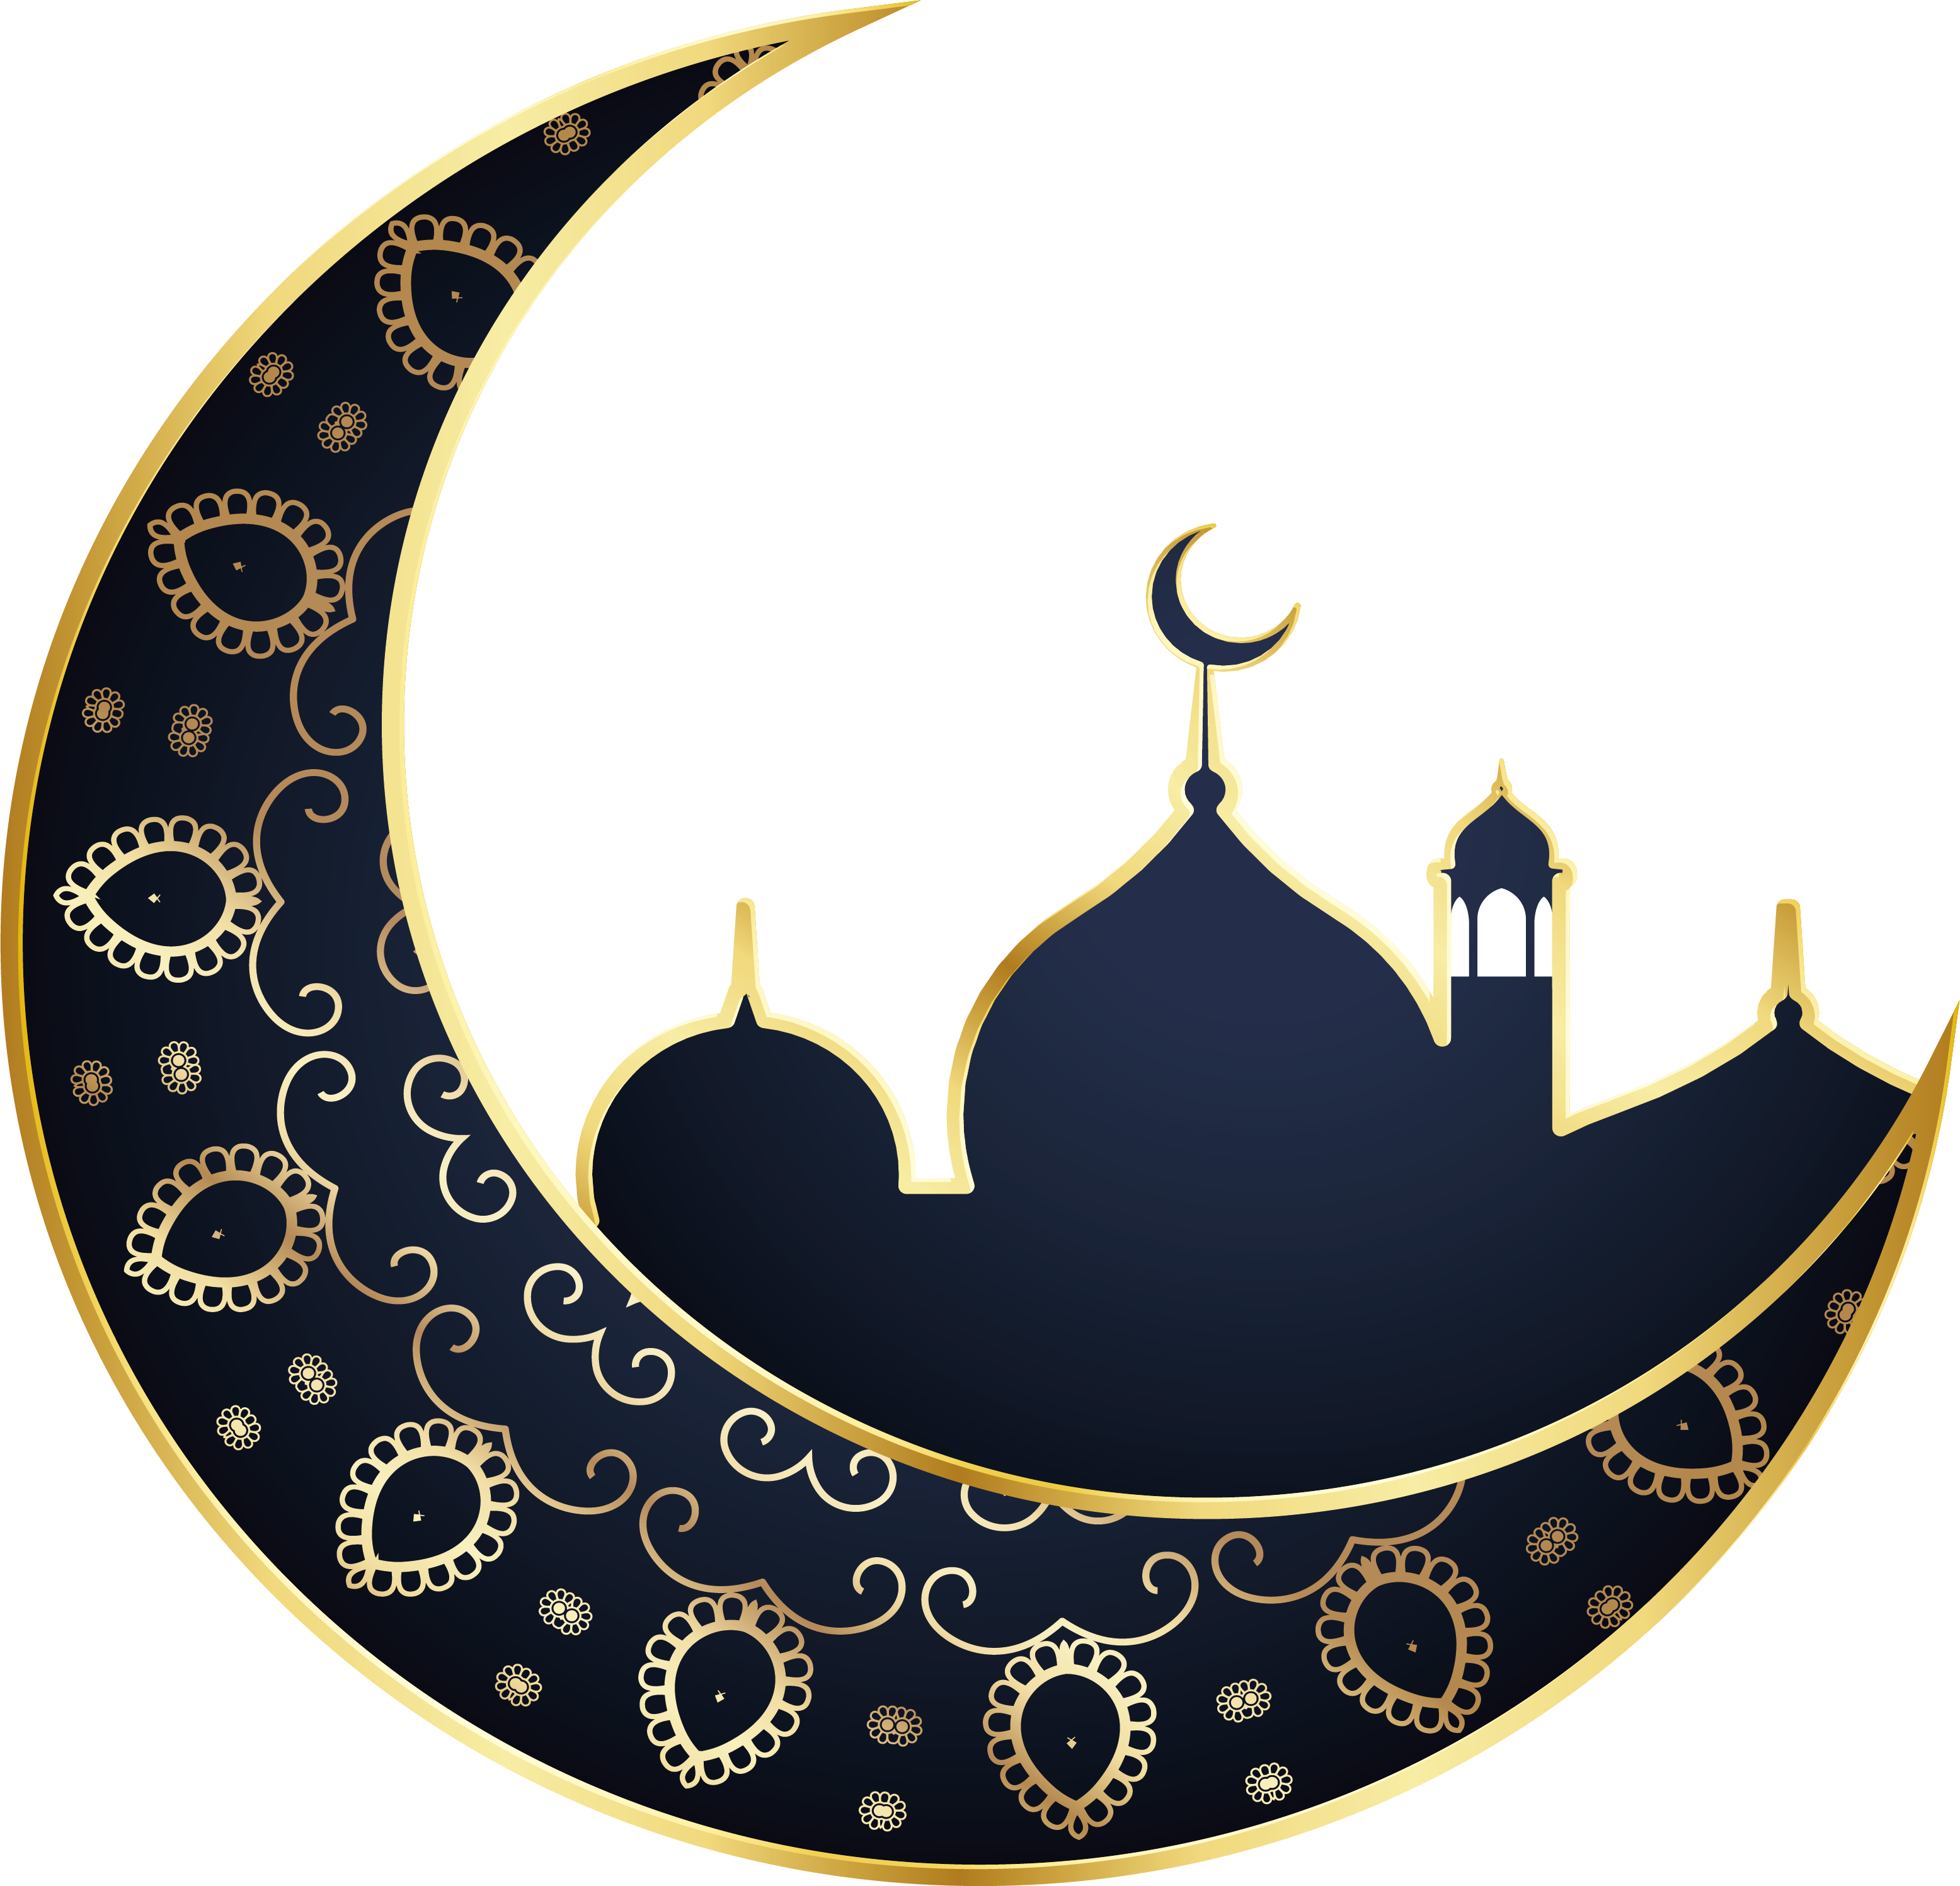 Islam PNG images free download.